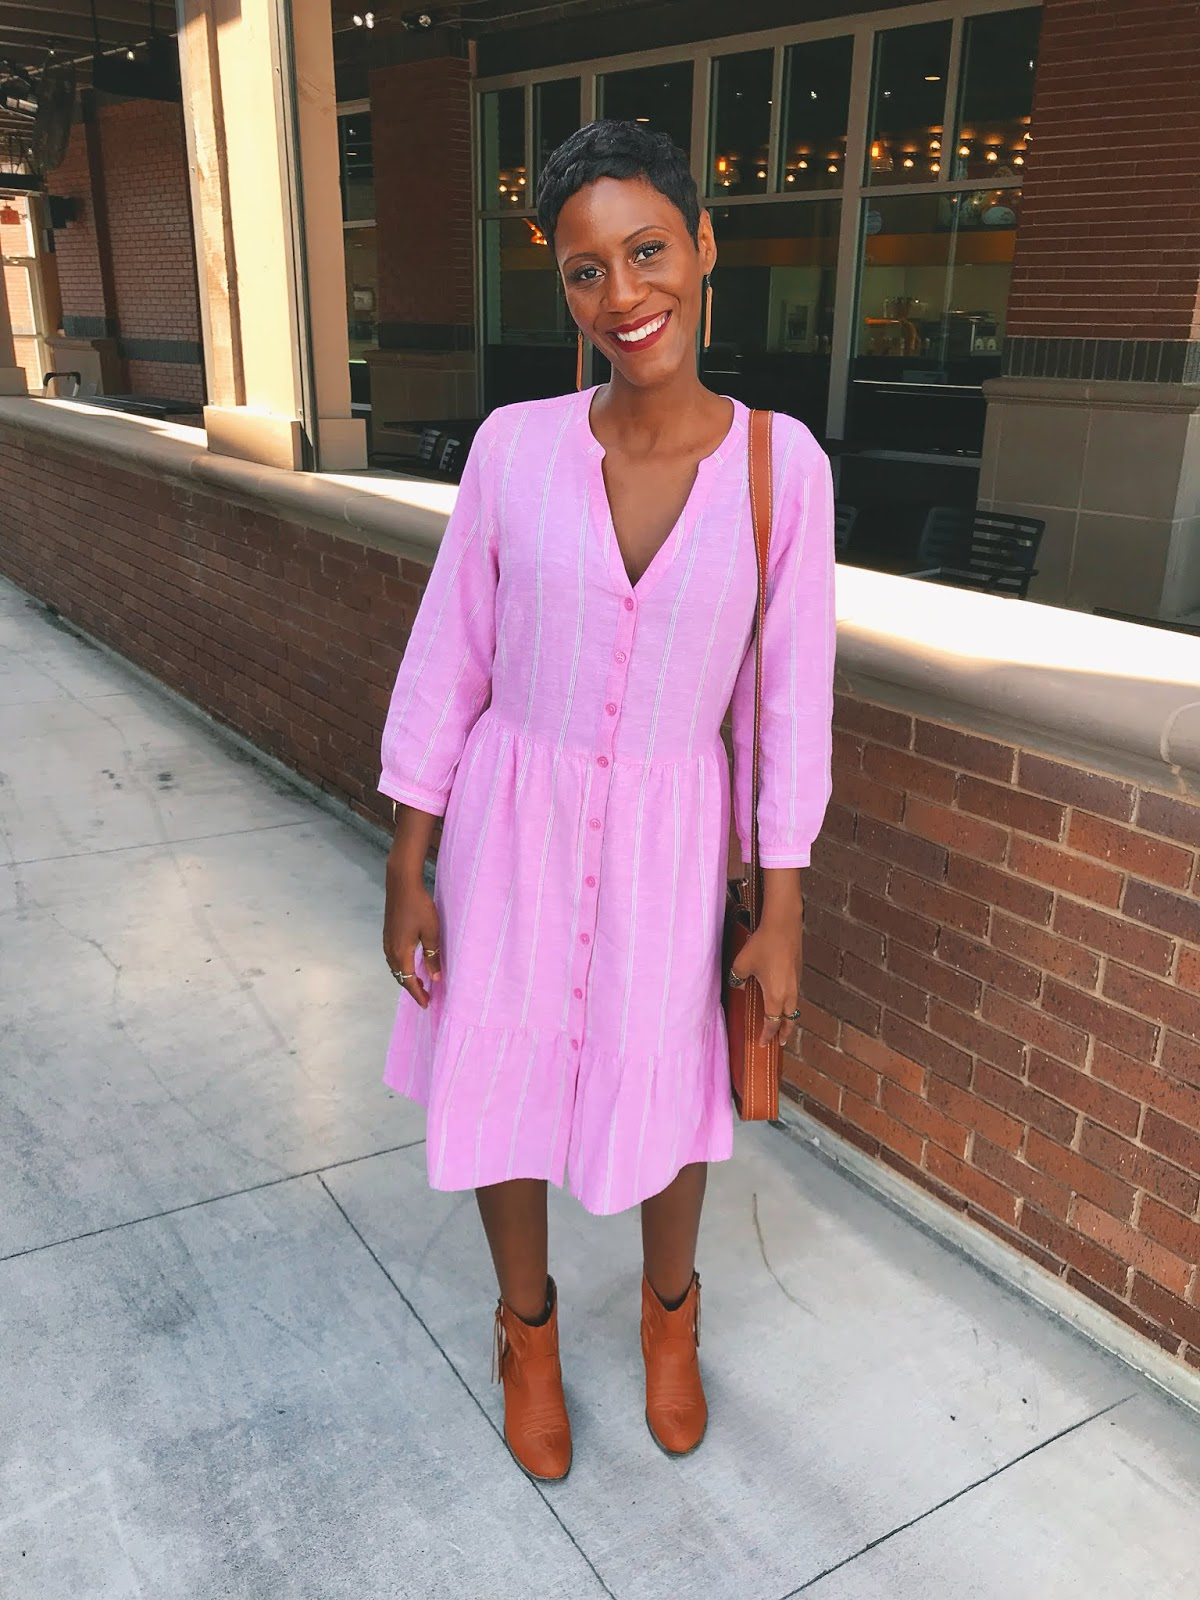 Worry Less And Rock The Pink Dress!